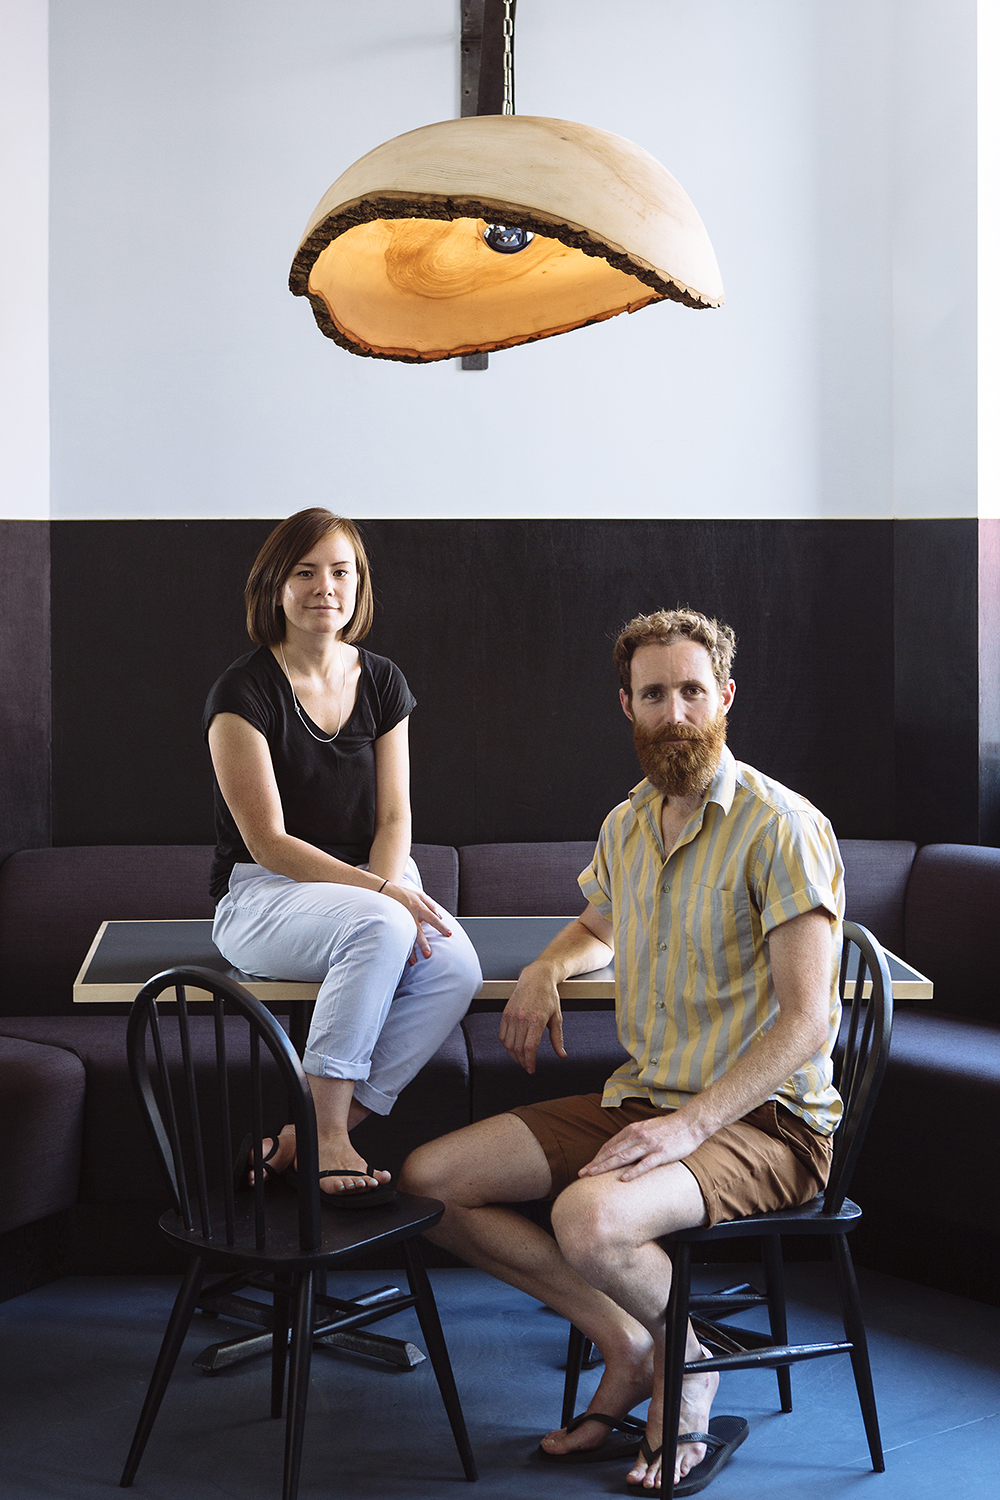 Pippa Murray and Simon Lamason of Other Works, Photographed at Verden, London, 2014